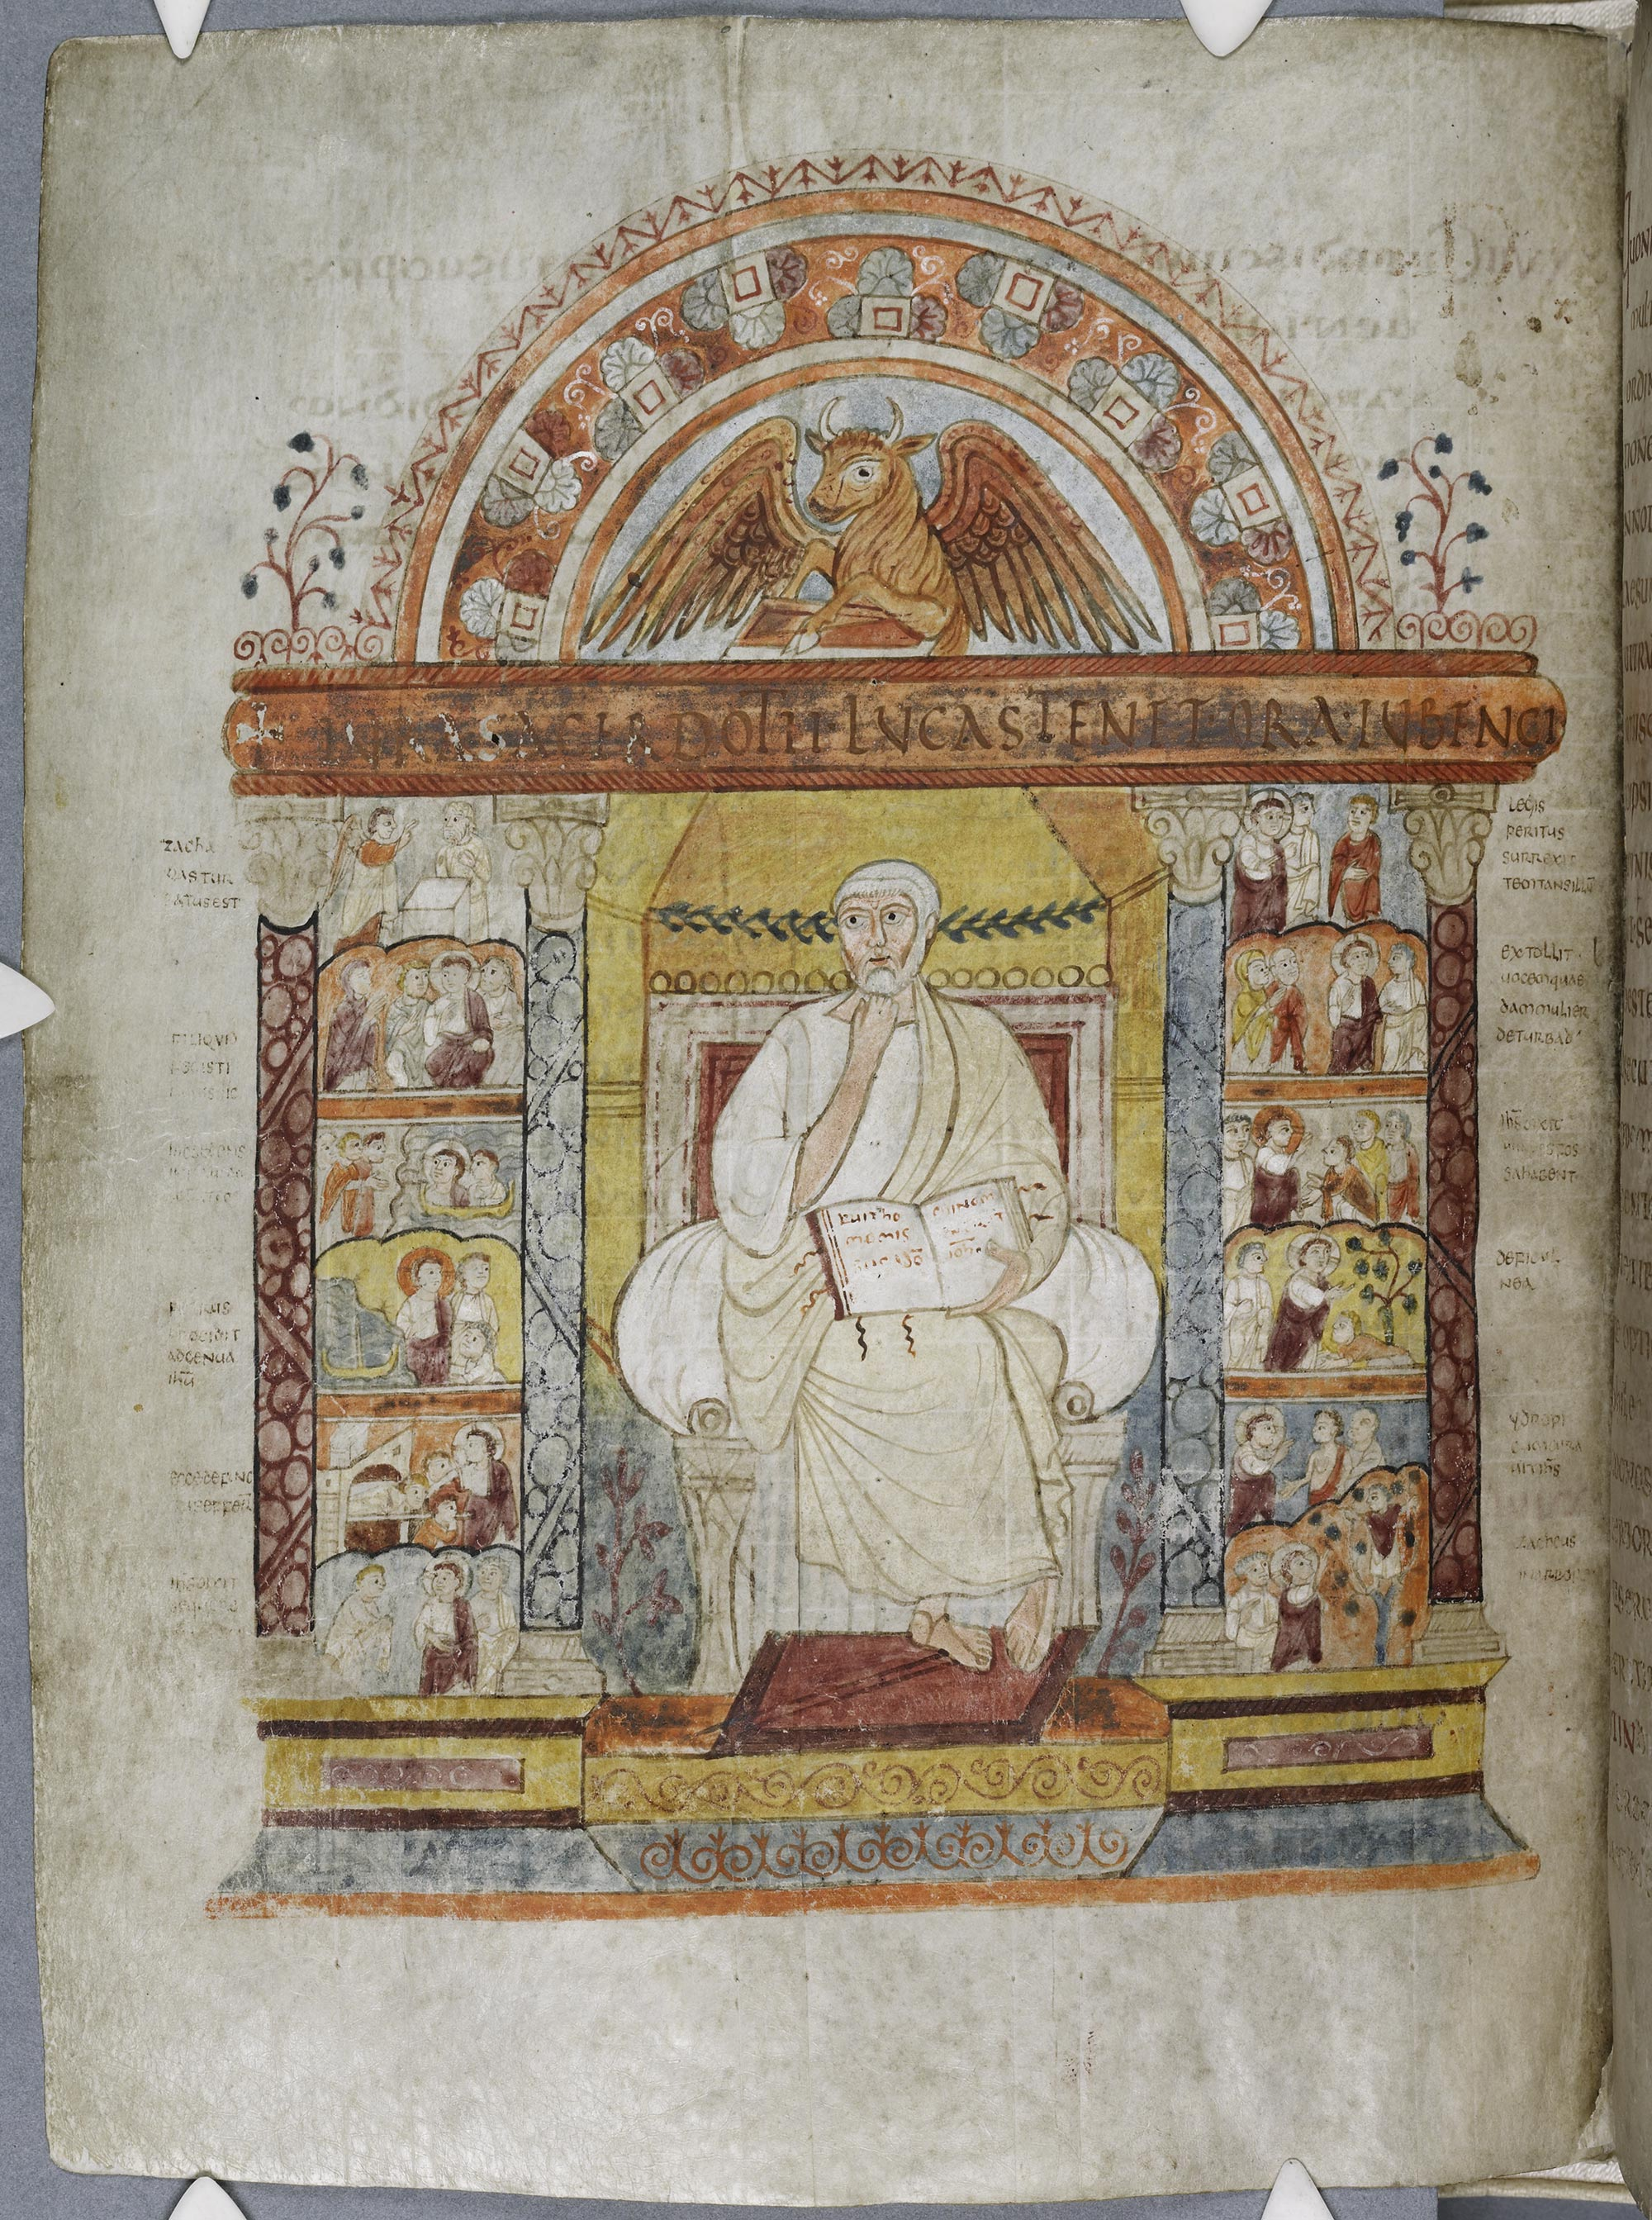 Illuminated page depicting a saint